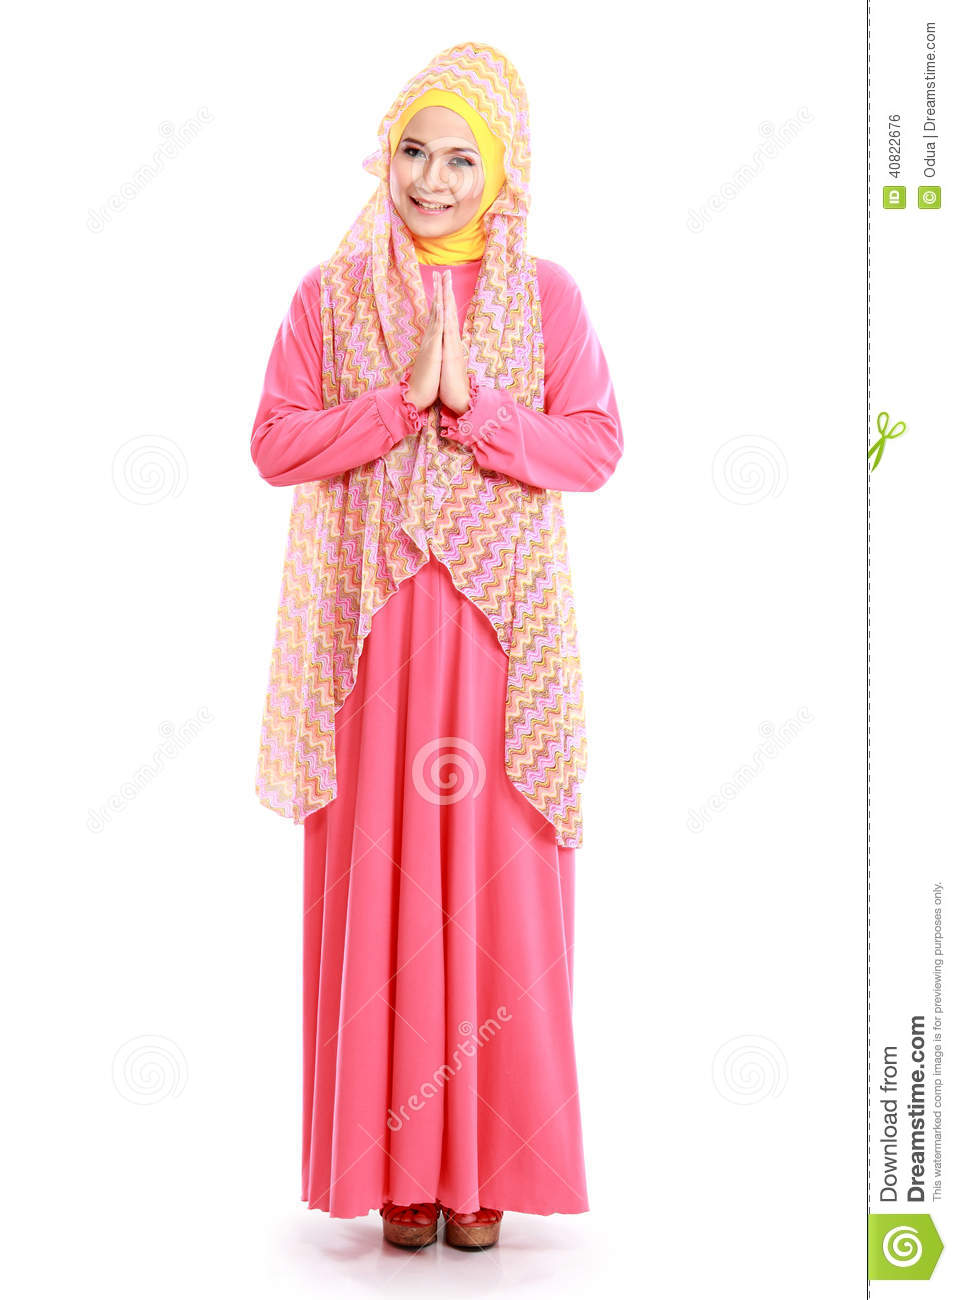 find muslim girl online Our up to date collection has historically popular islamic baby names, muslim names from quran, or names of famous muslim people.